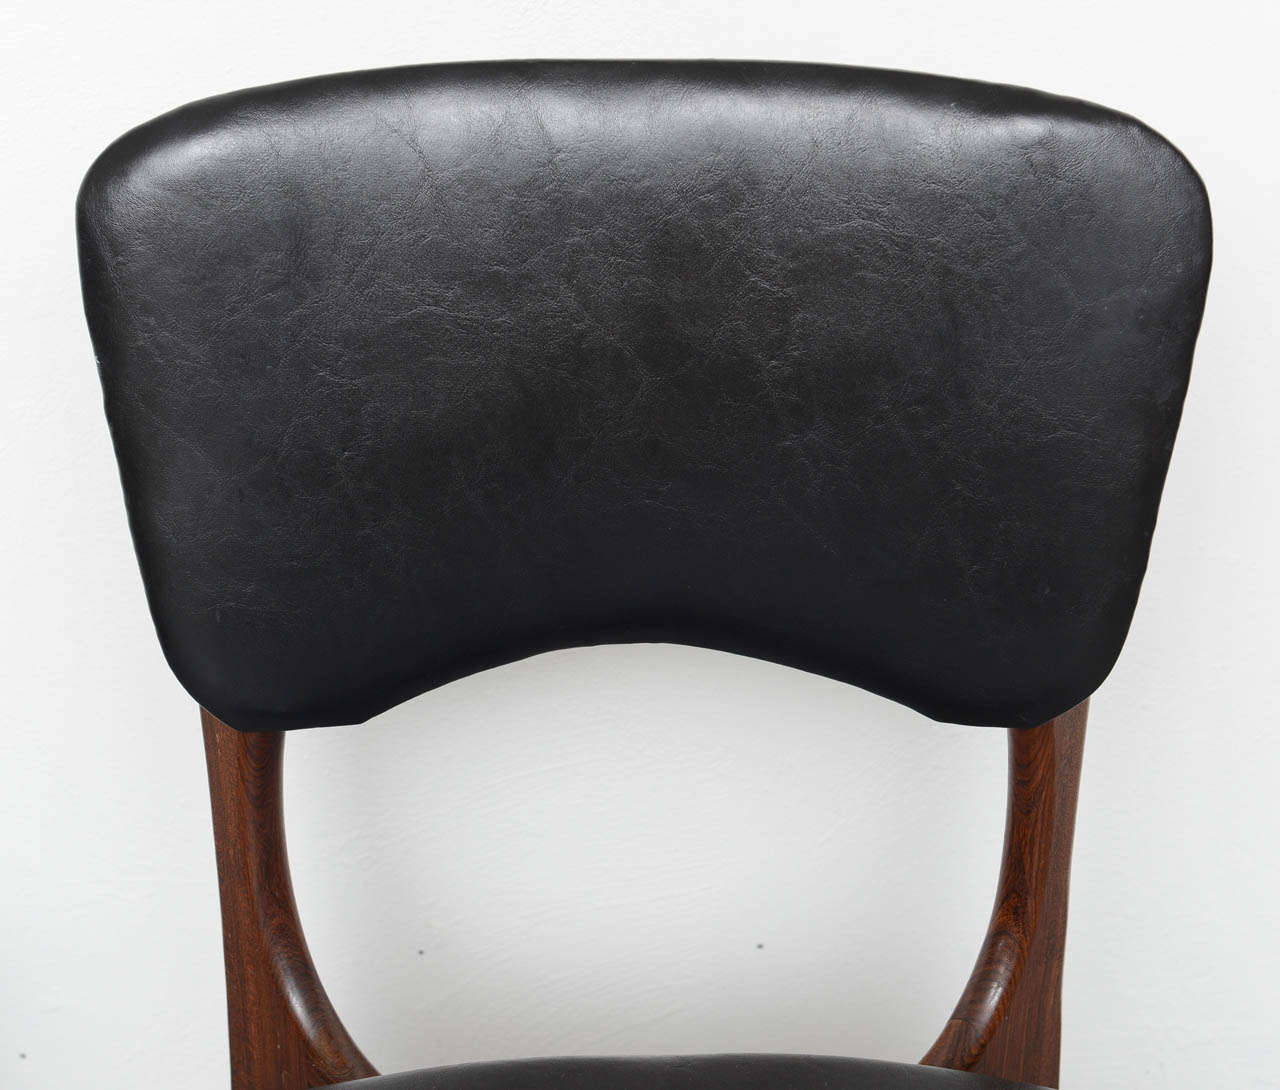 1970s Rosewood Chairs by Don Shoemaker, Mexico For Sale 4